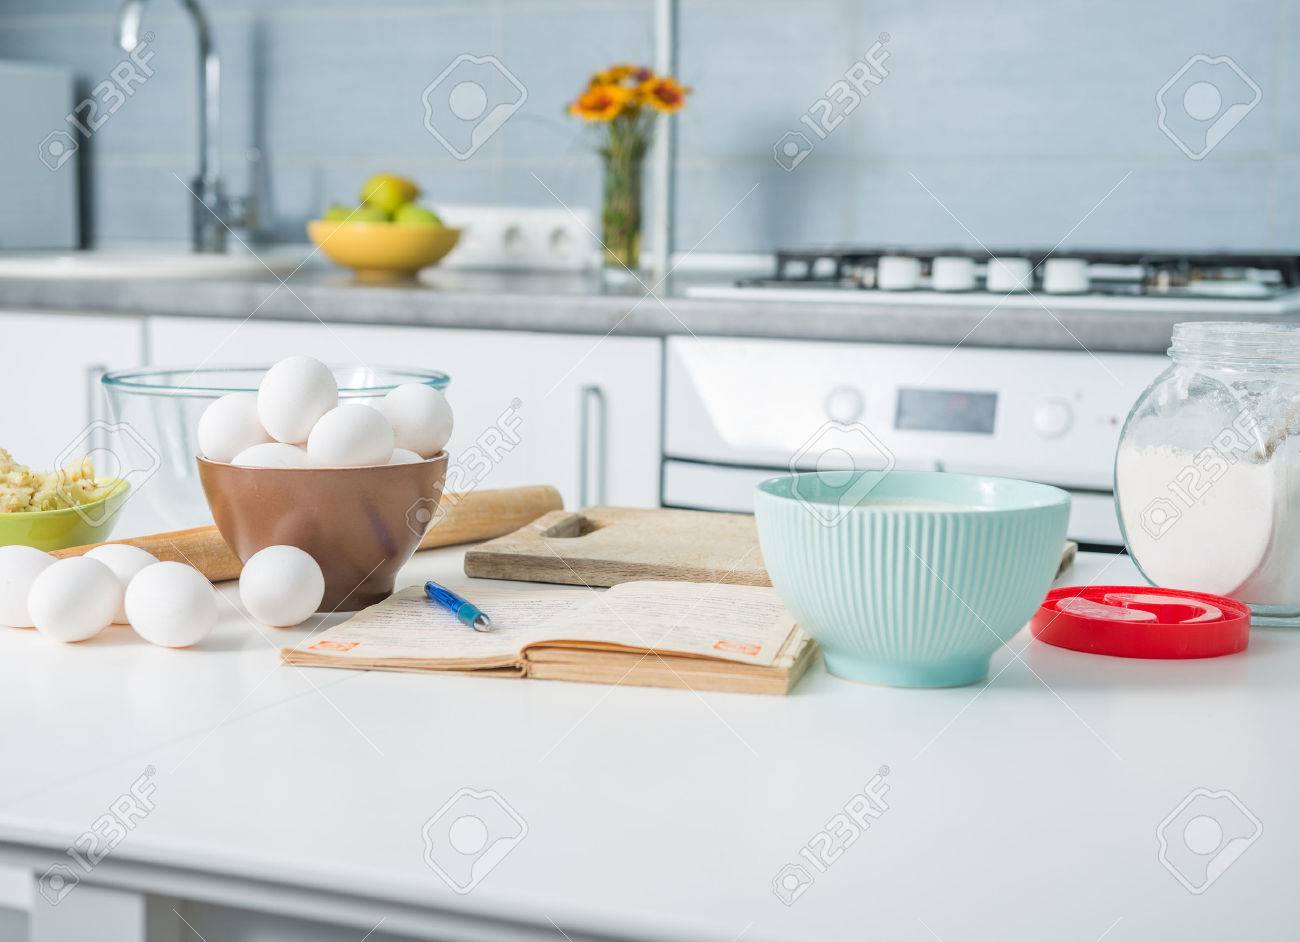 ingredients for baking and recioe book on a kitchen table - 43785616